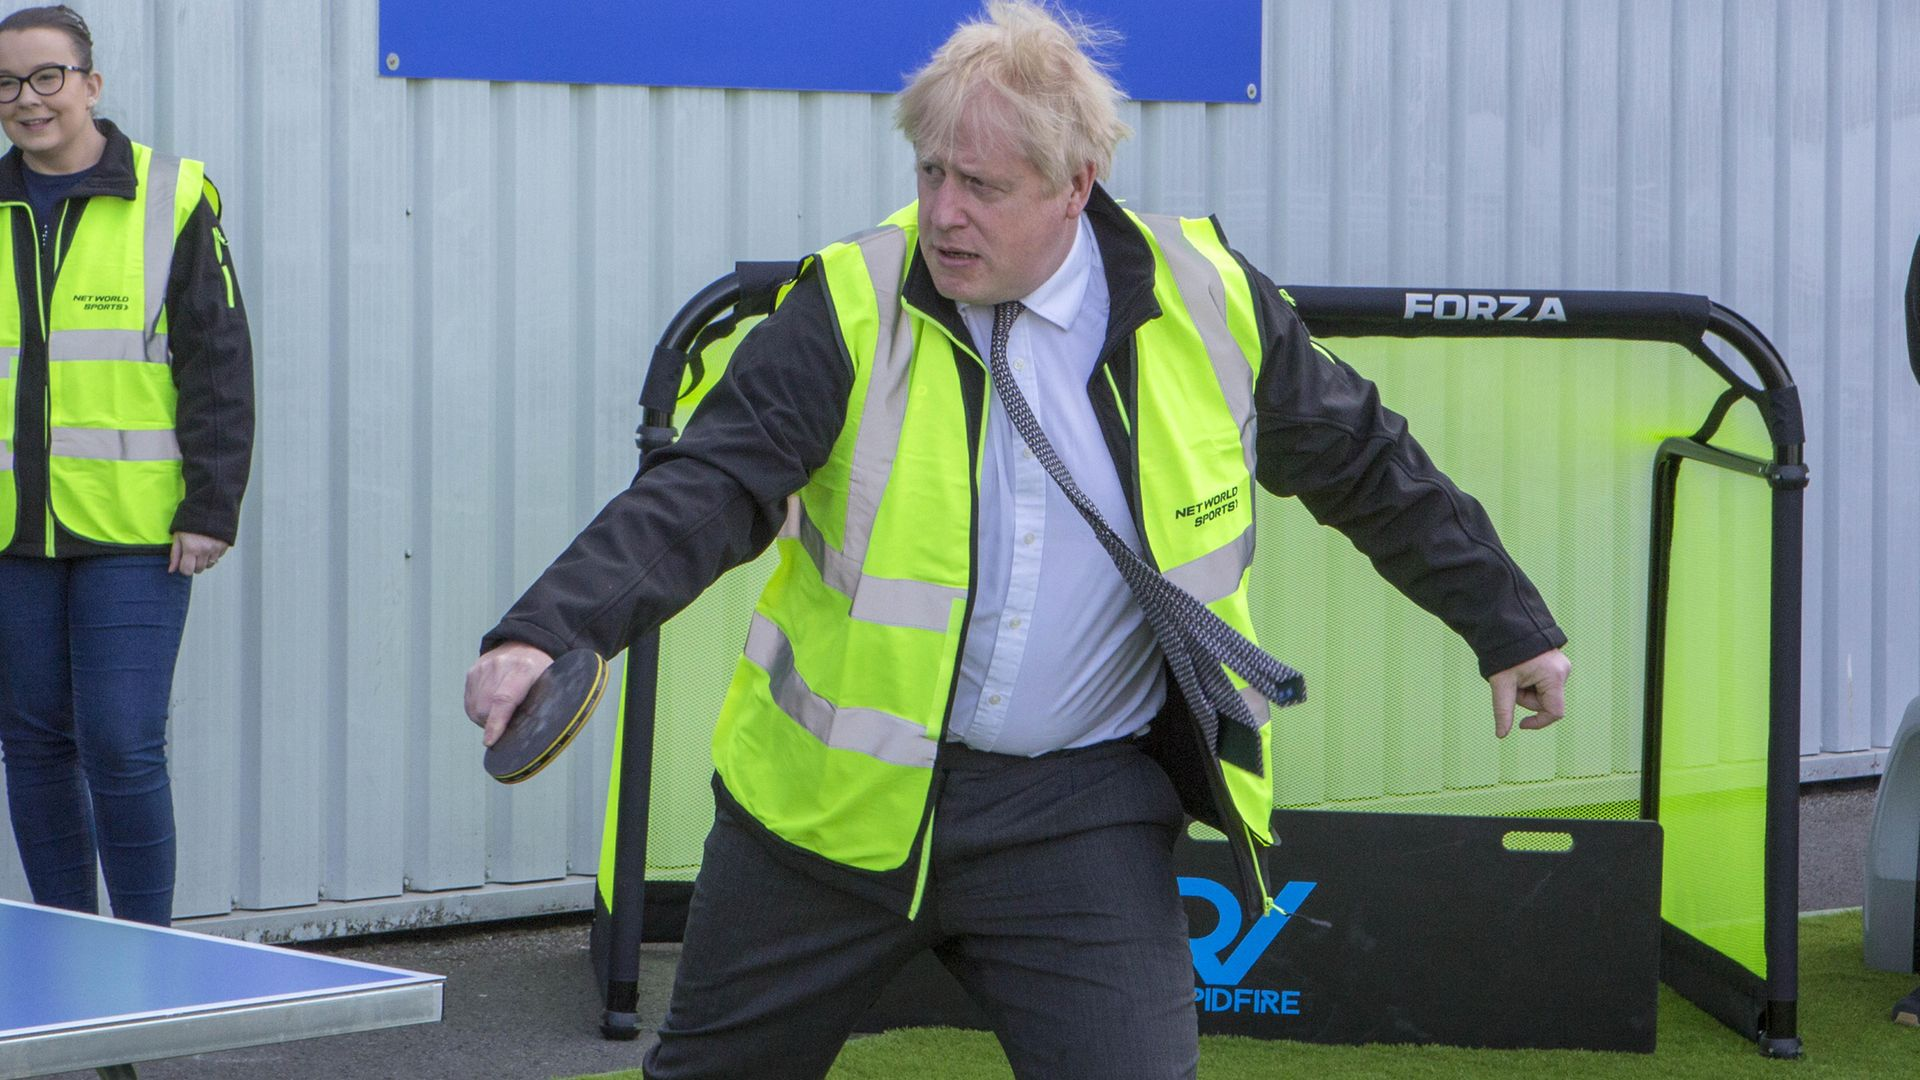 Prime Minister Boris Johnson plays table tennis during a visit to Wrexham - Credit: PA